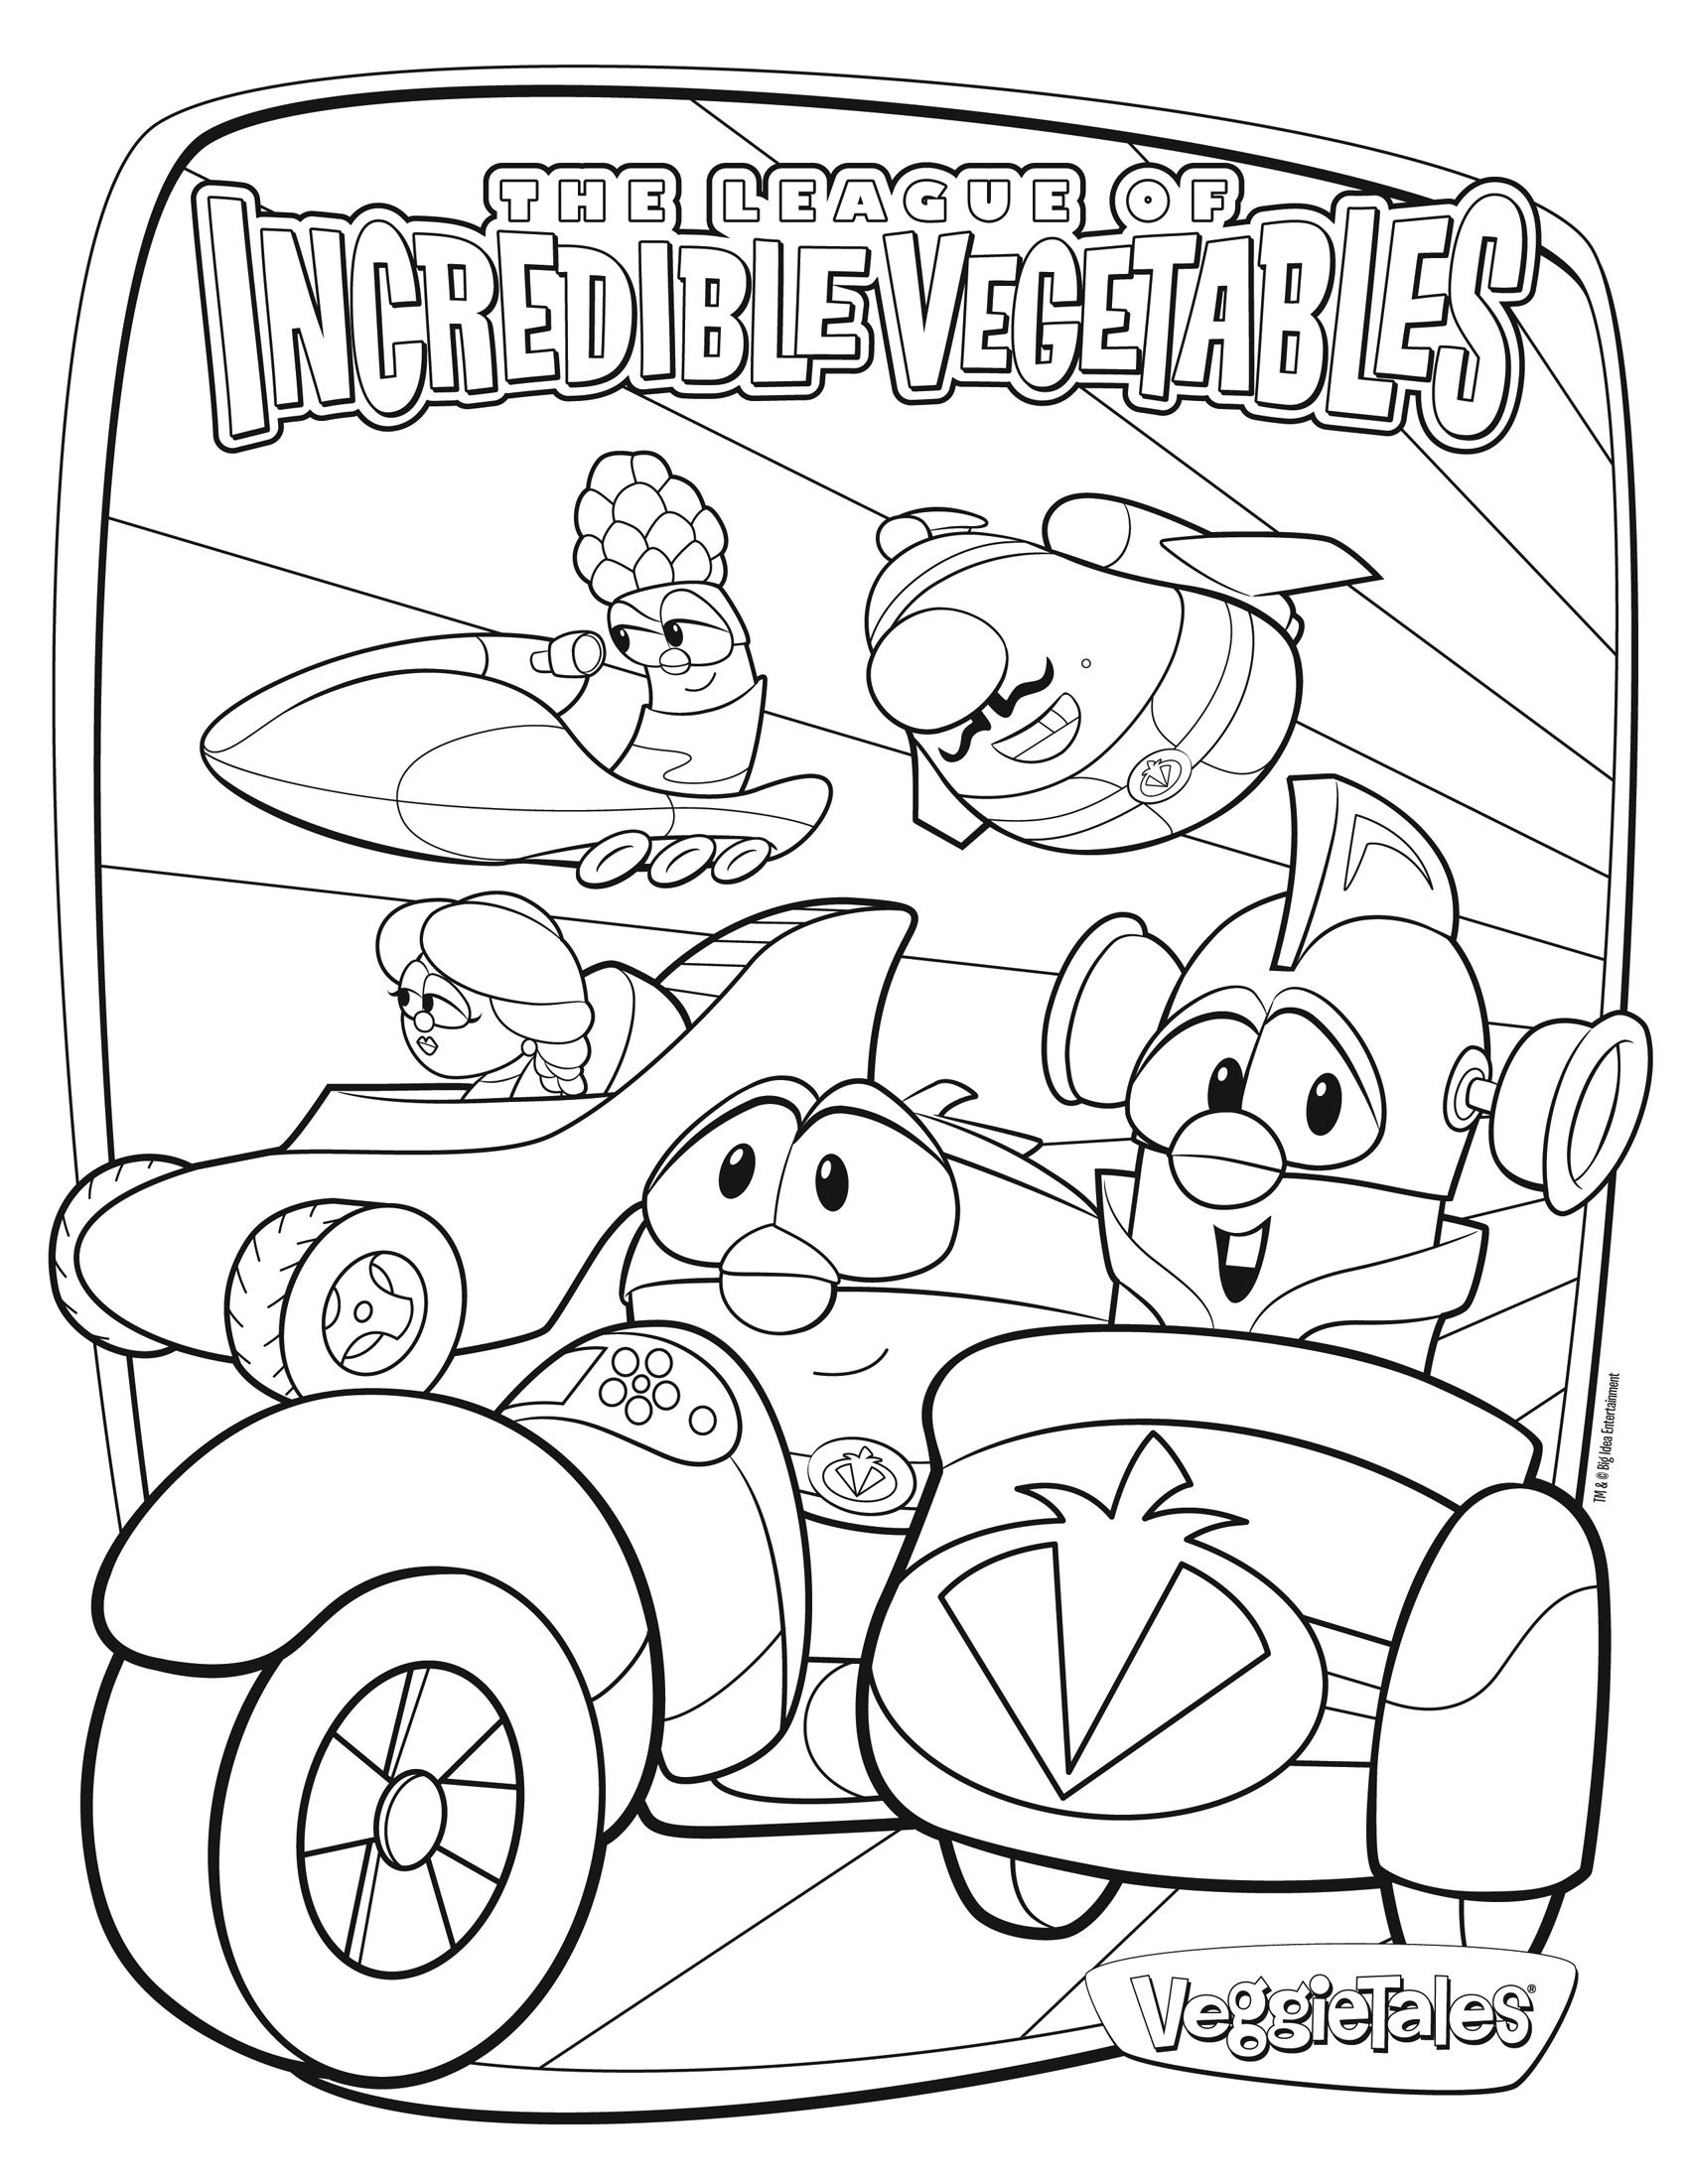 veggie tales coloring pages larryboy - photo#25